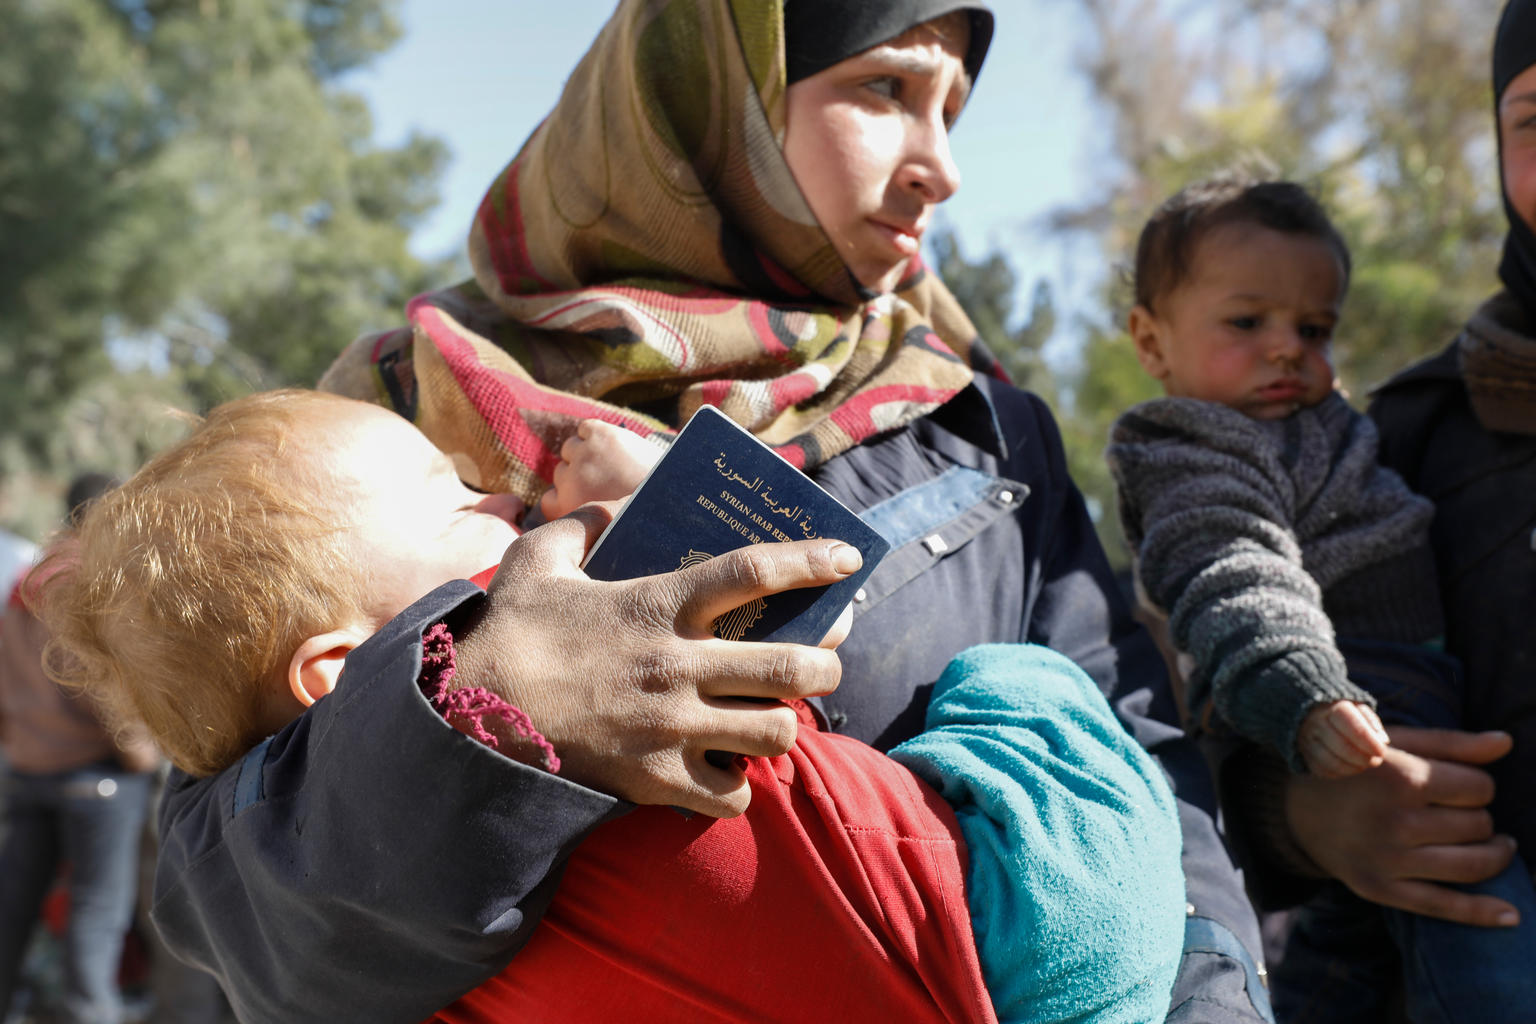 On 20 March 2018 in Adra in eastern Ghouta in the Syrian Arab Republic, a woman carries a child at the...